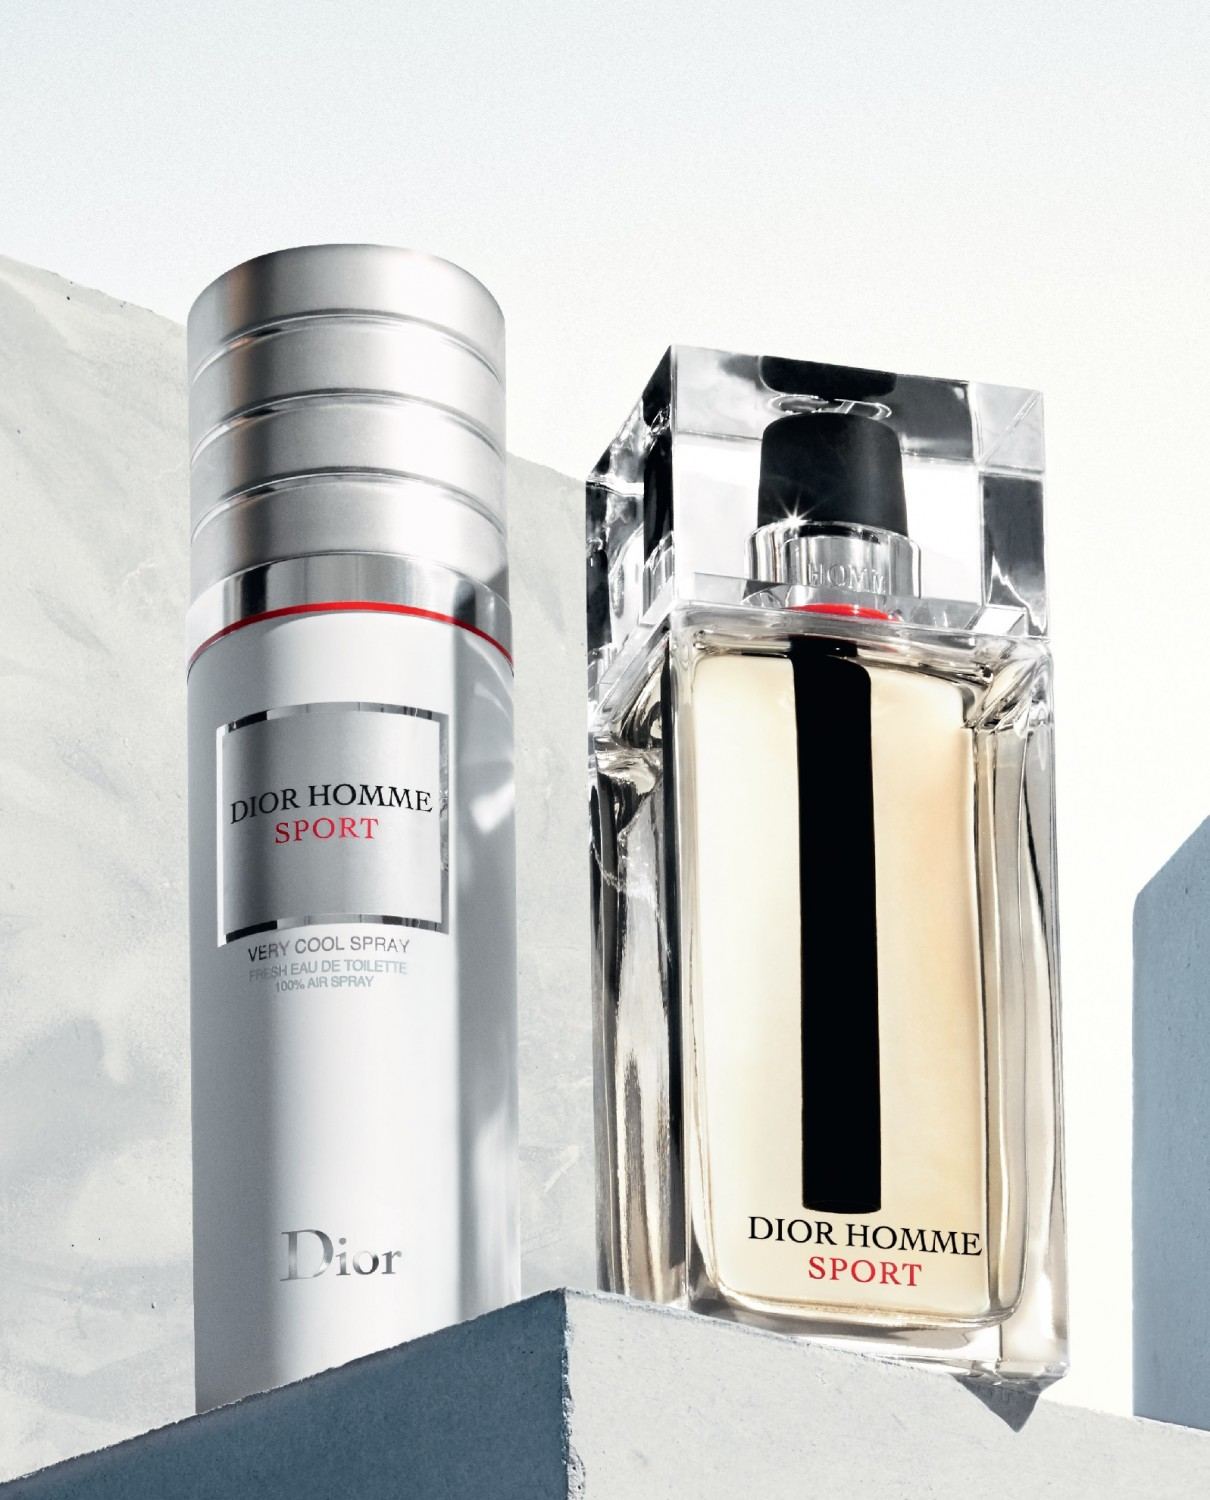 Christian Dior Homme Sport Very Cool Spray Perfume